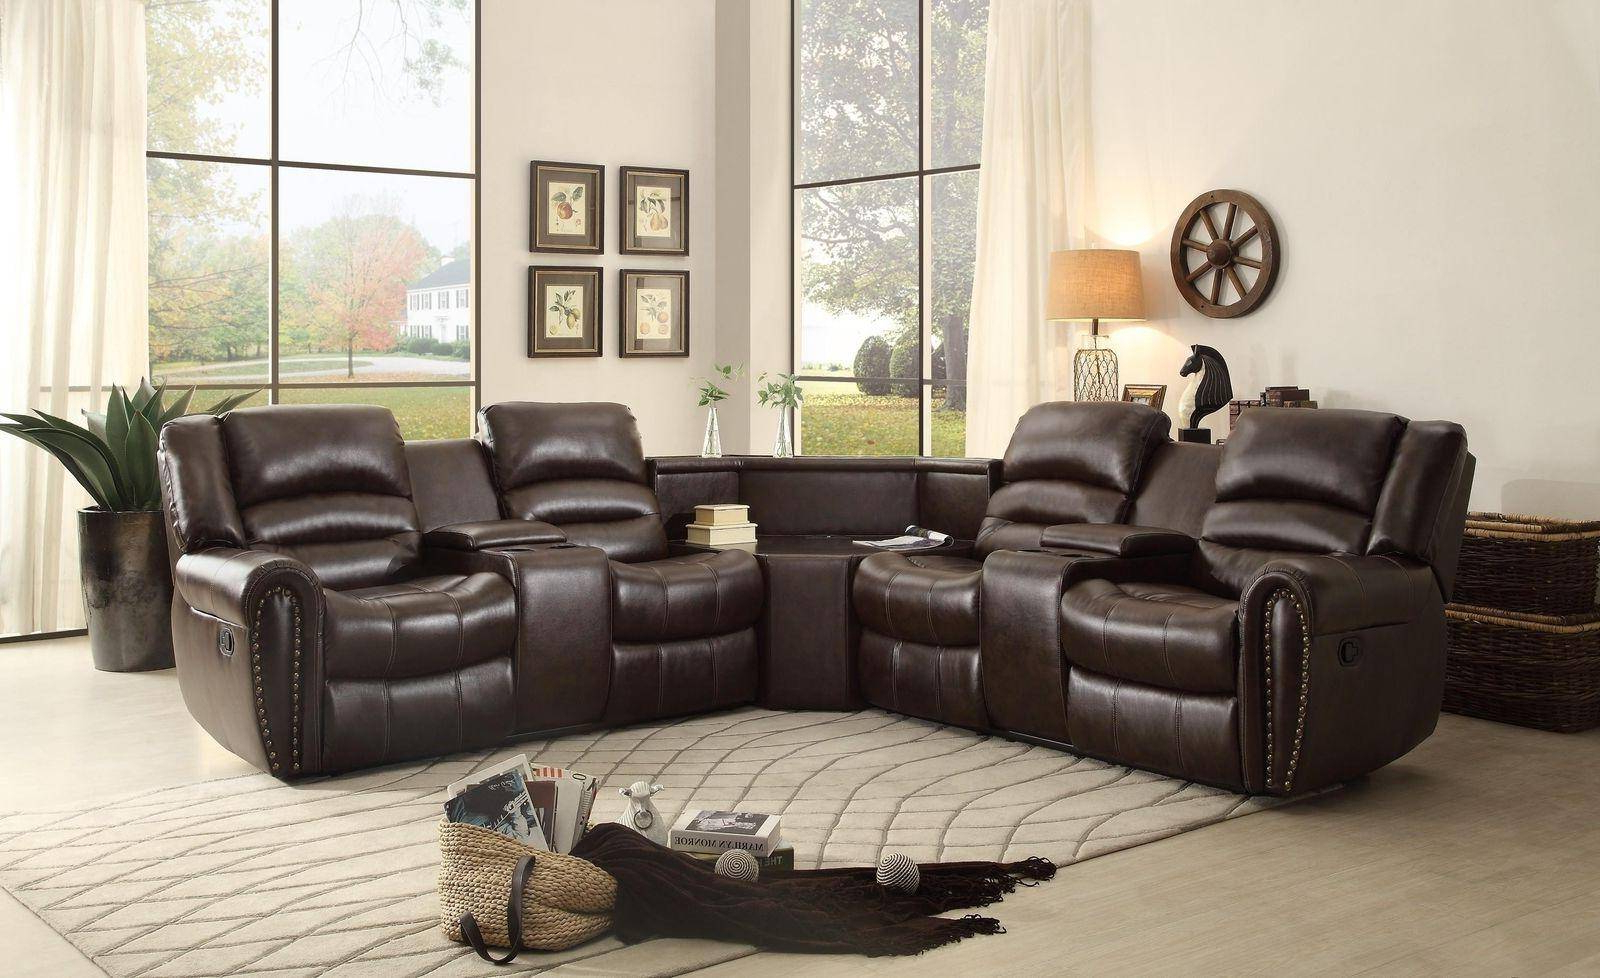 3Pc Bonded Leather Upholstered Wooden Sectional Sofas Brown With Regard To Most Recently Released Homelegance Palmyra Brown Bonded Leather Reclining (View 6 of 25)